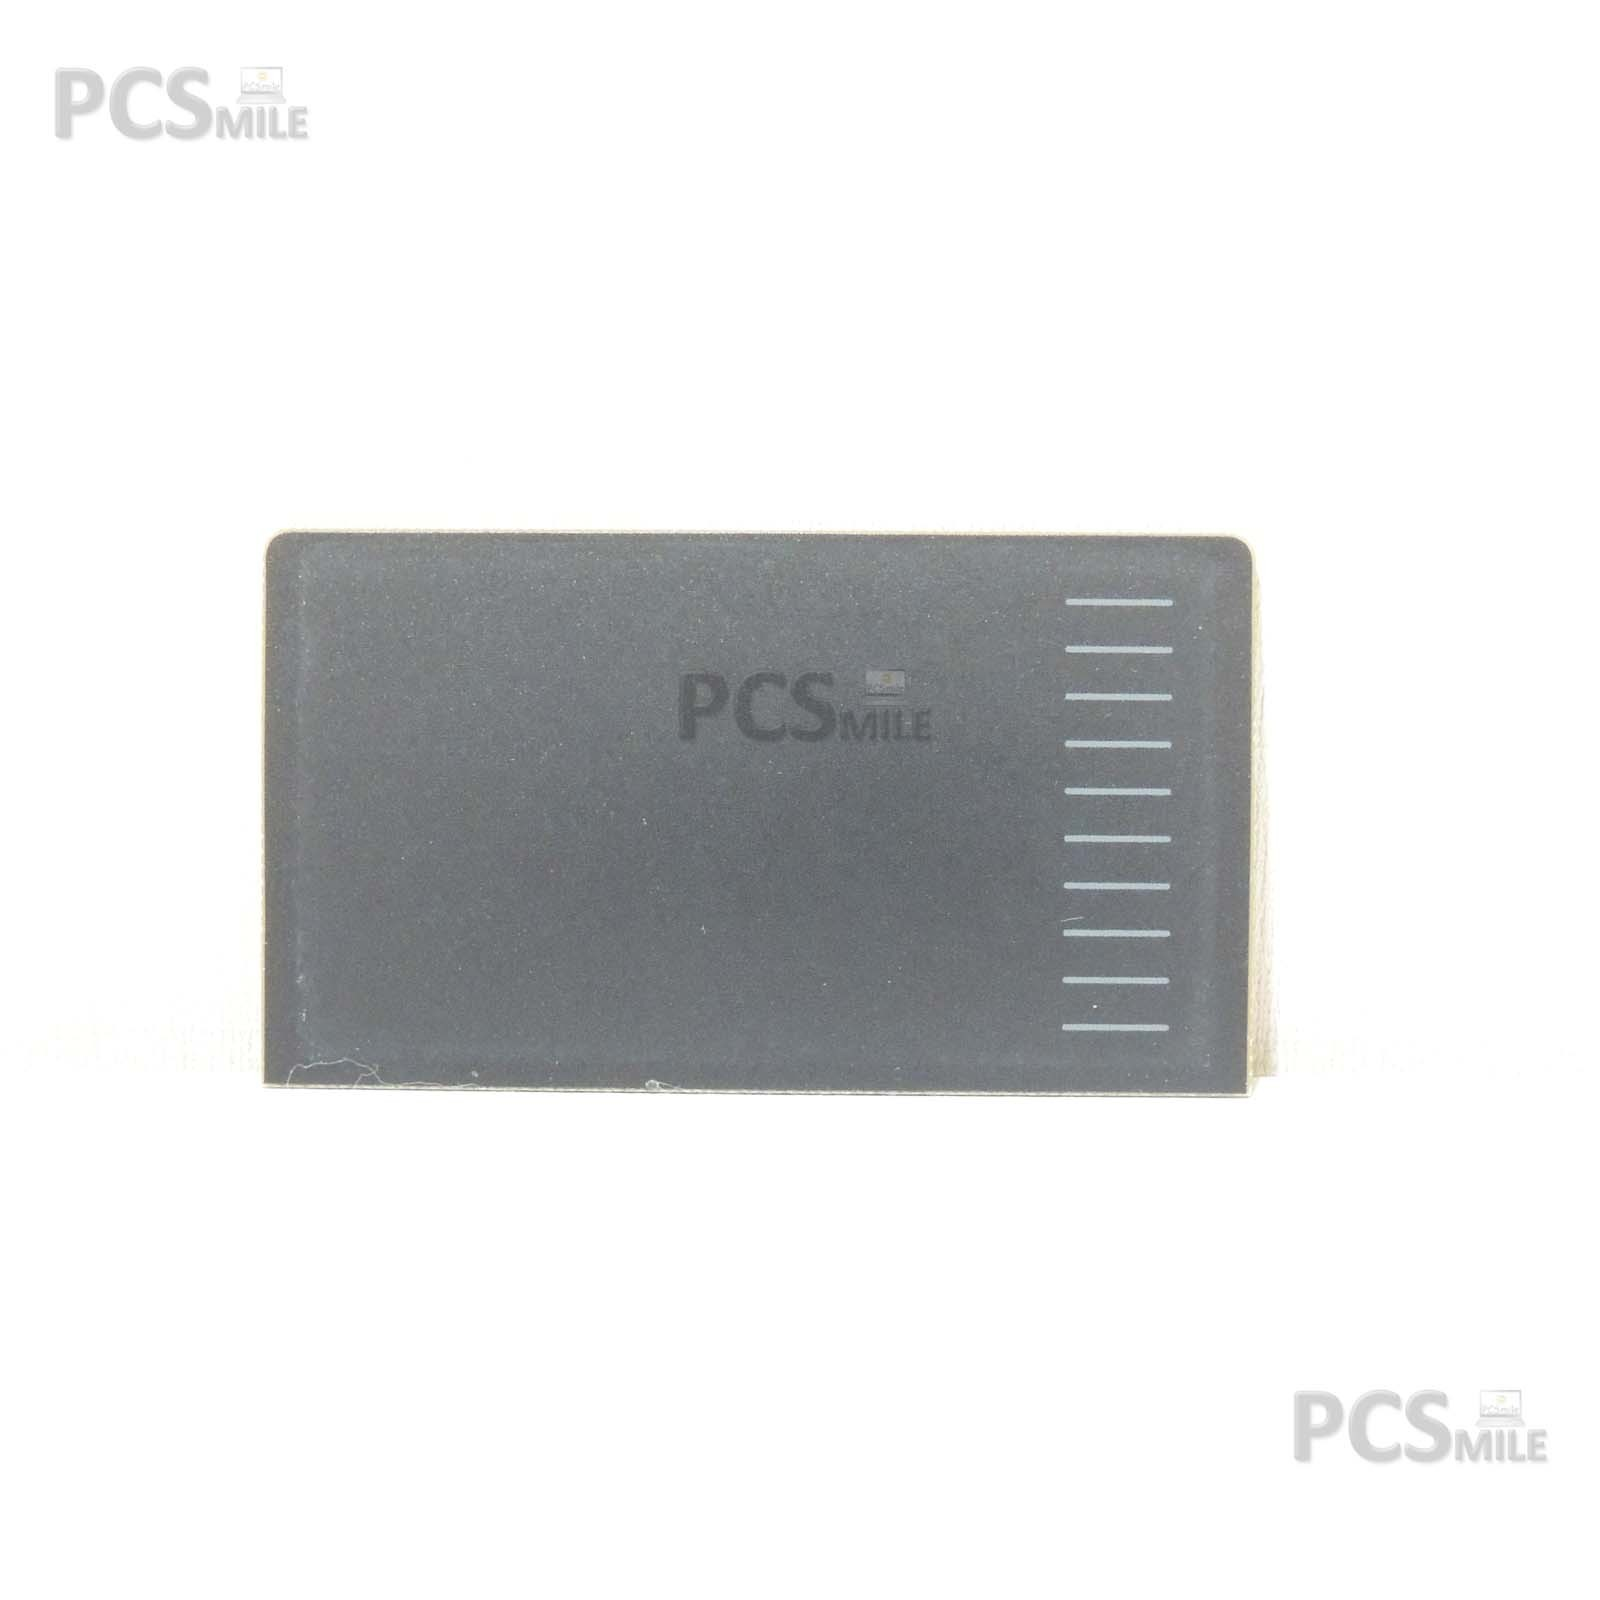 Touchpad HP Compaq 6751b TM51PUGR383 originale